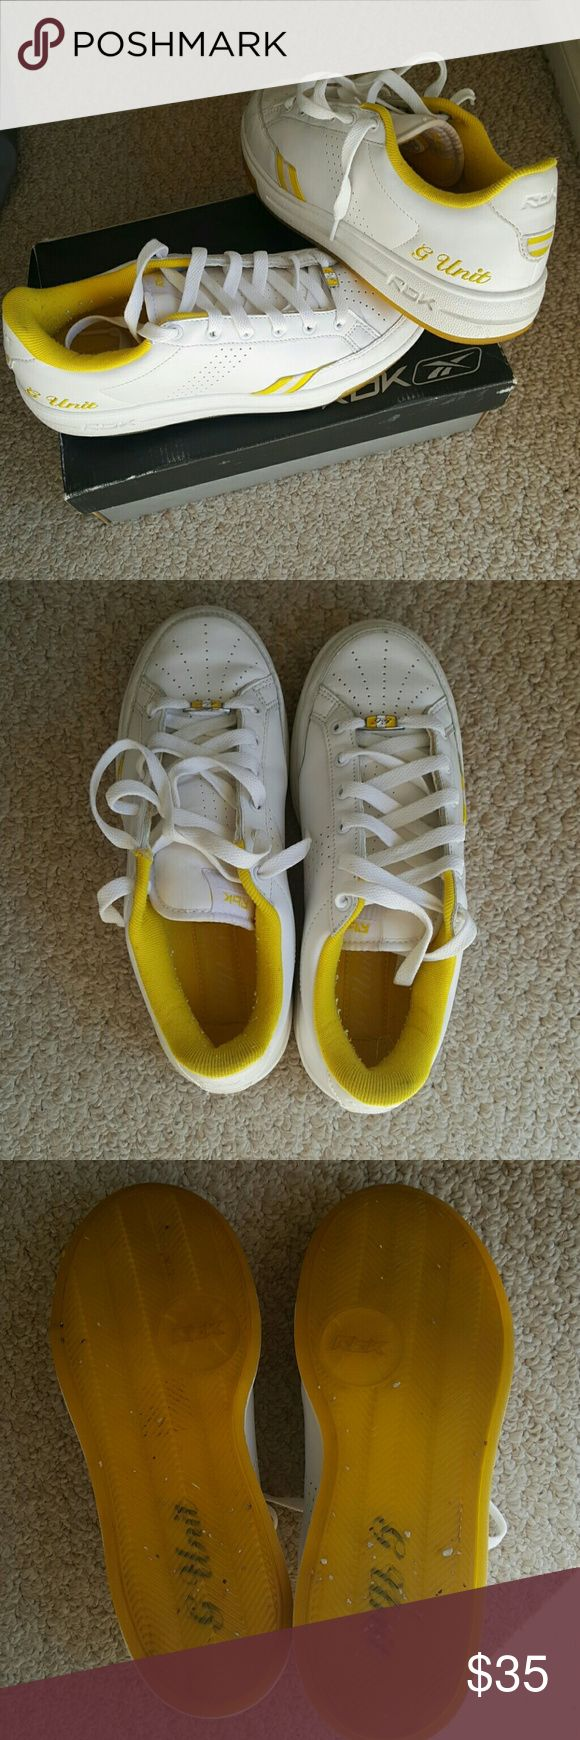 G Unit Reebok Shoes Original, authentic G Unit womens shoes by Reebok. White with yellow accents. They have been stored in and will include the origonal box. Reebok Shoes Sneakers